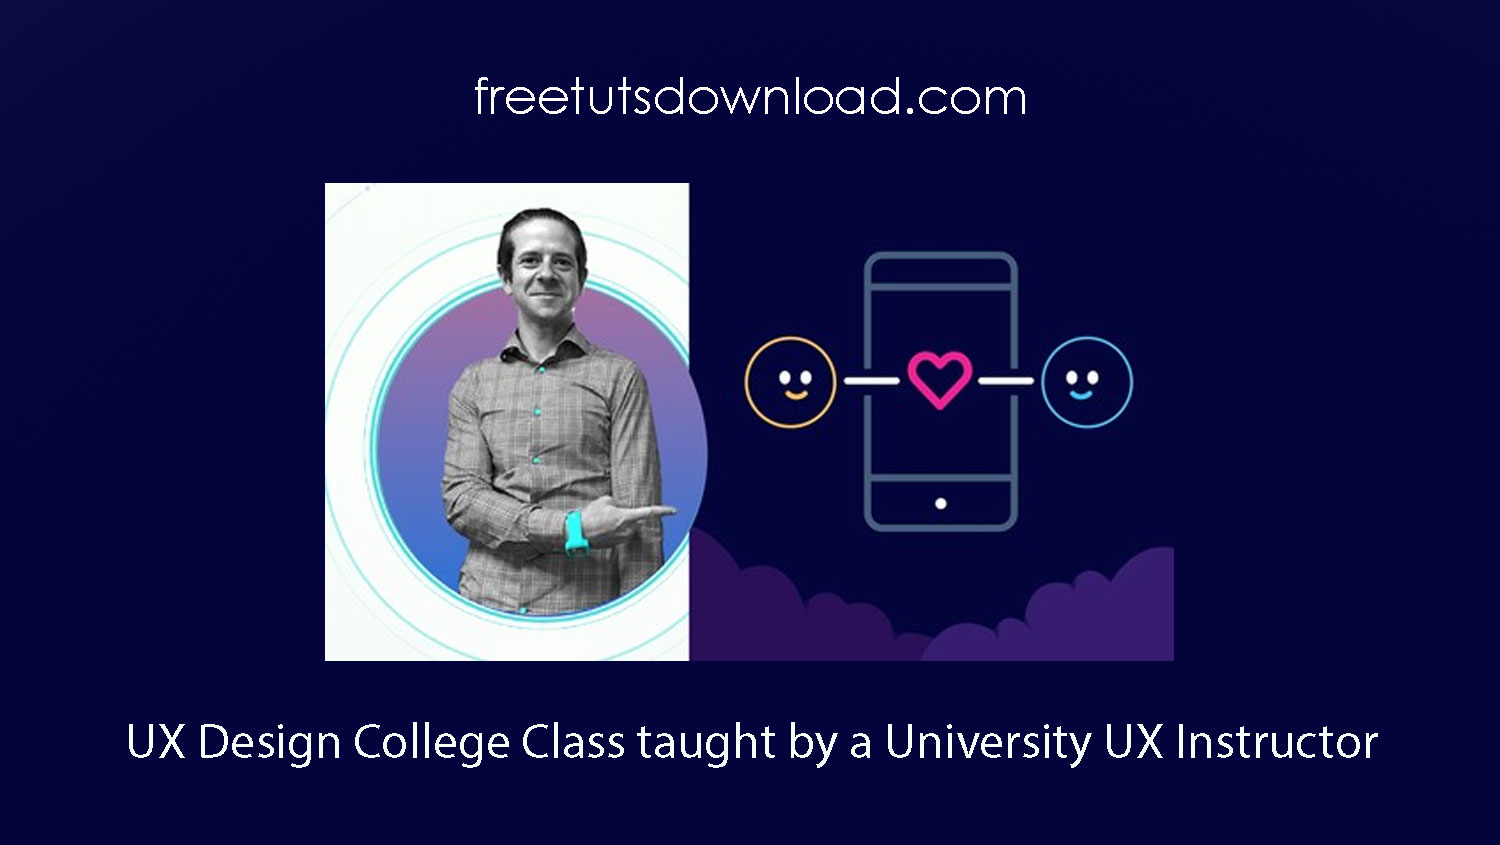 UX Design College Class taught by a University UX Instructor